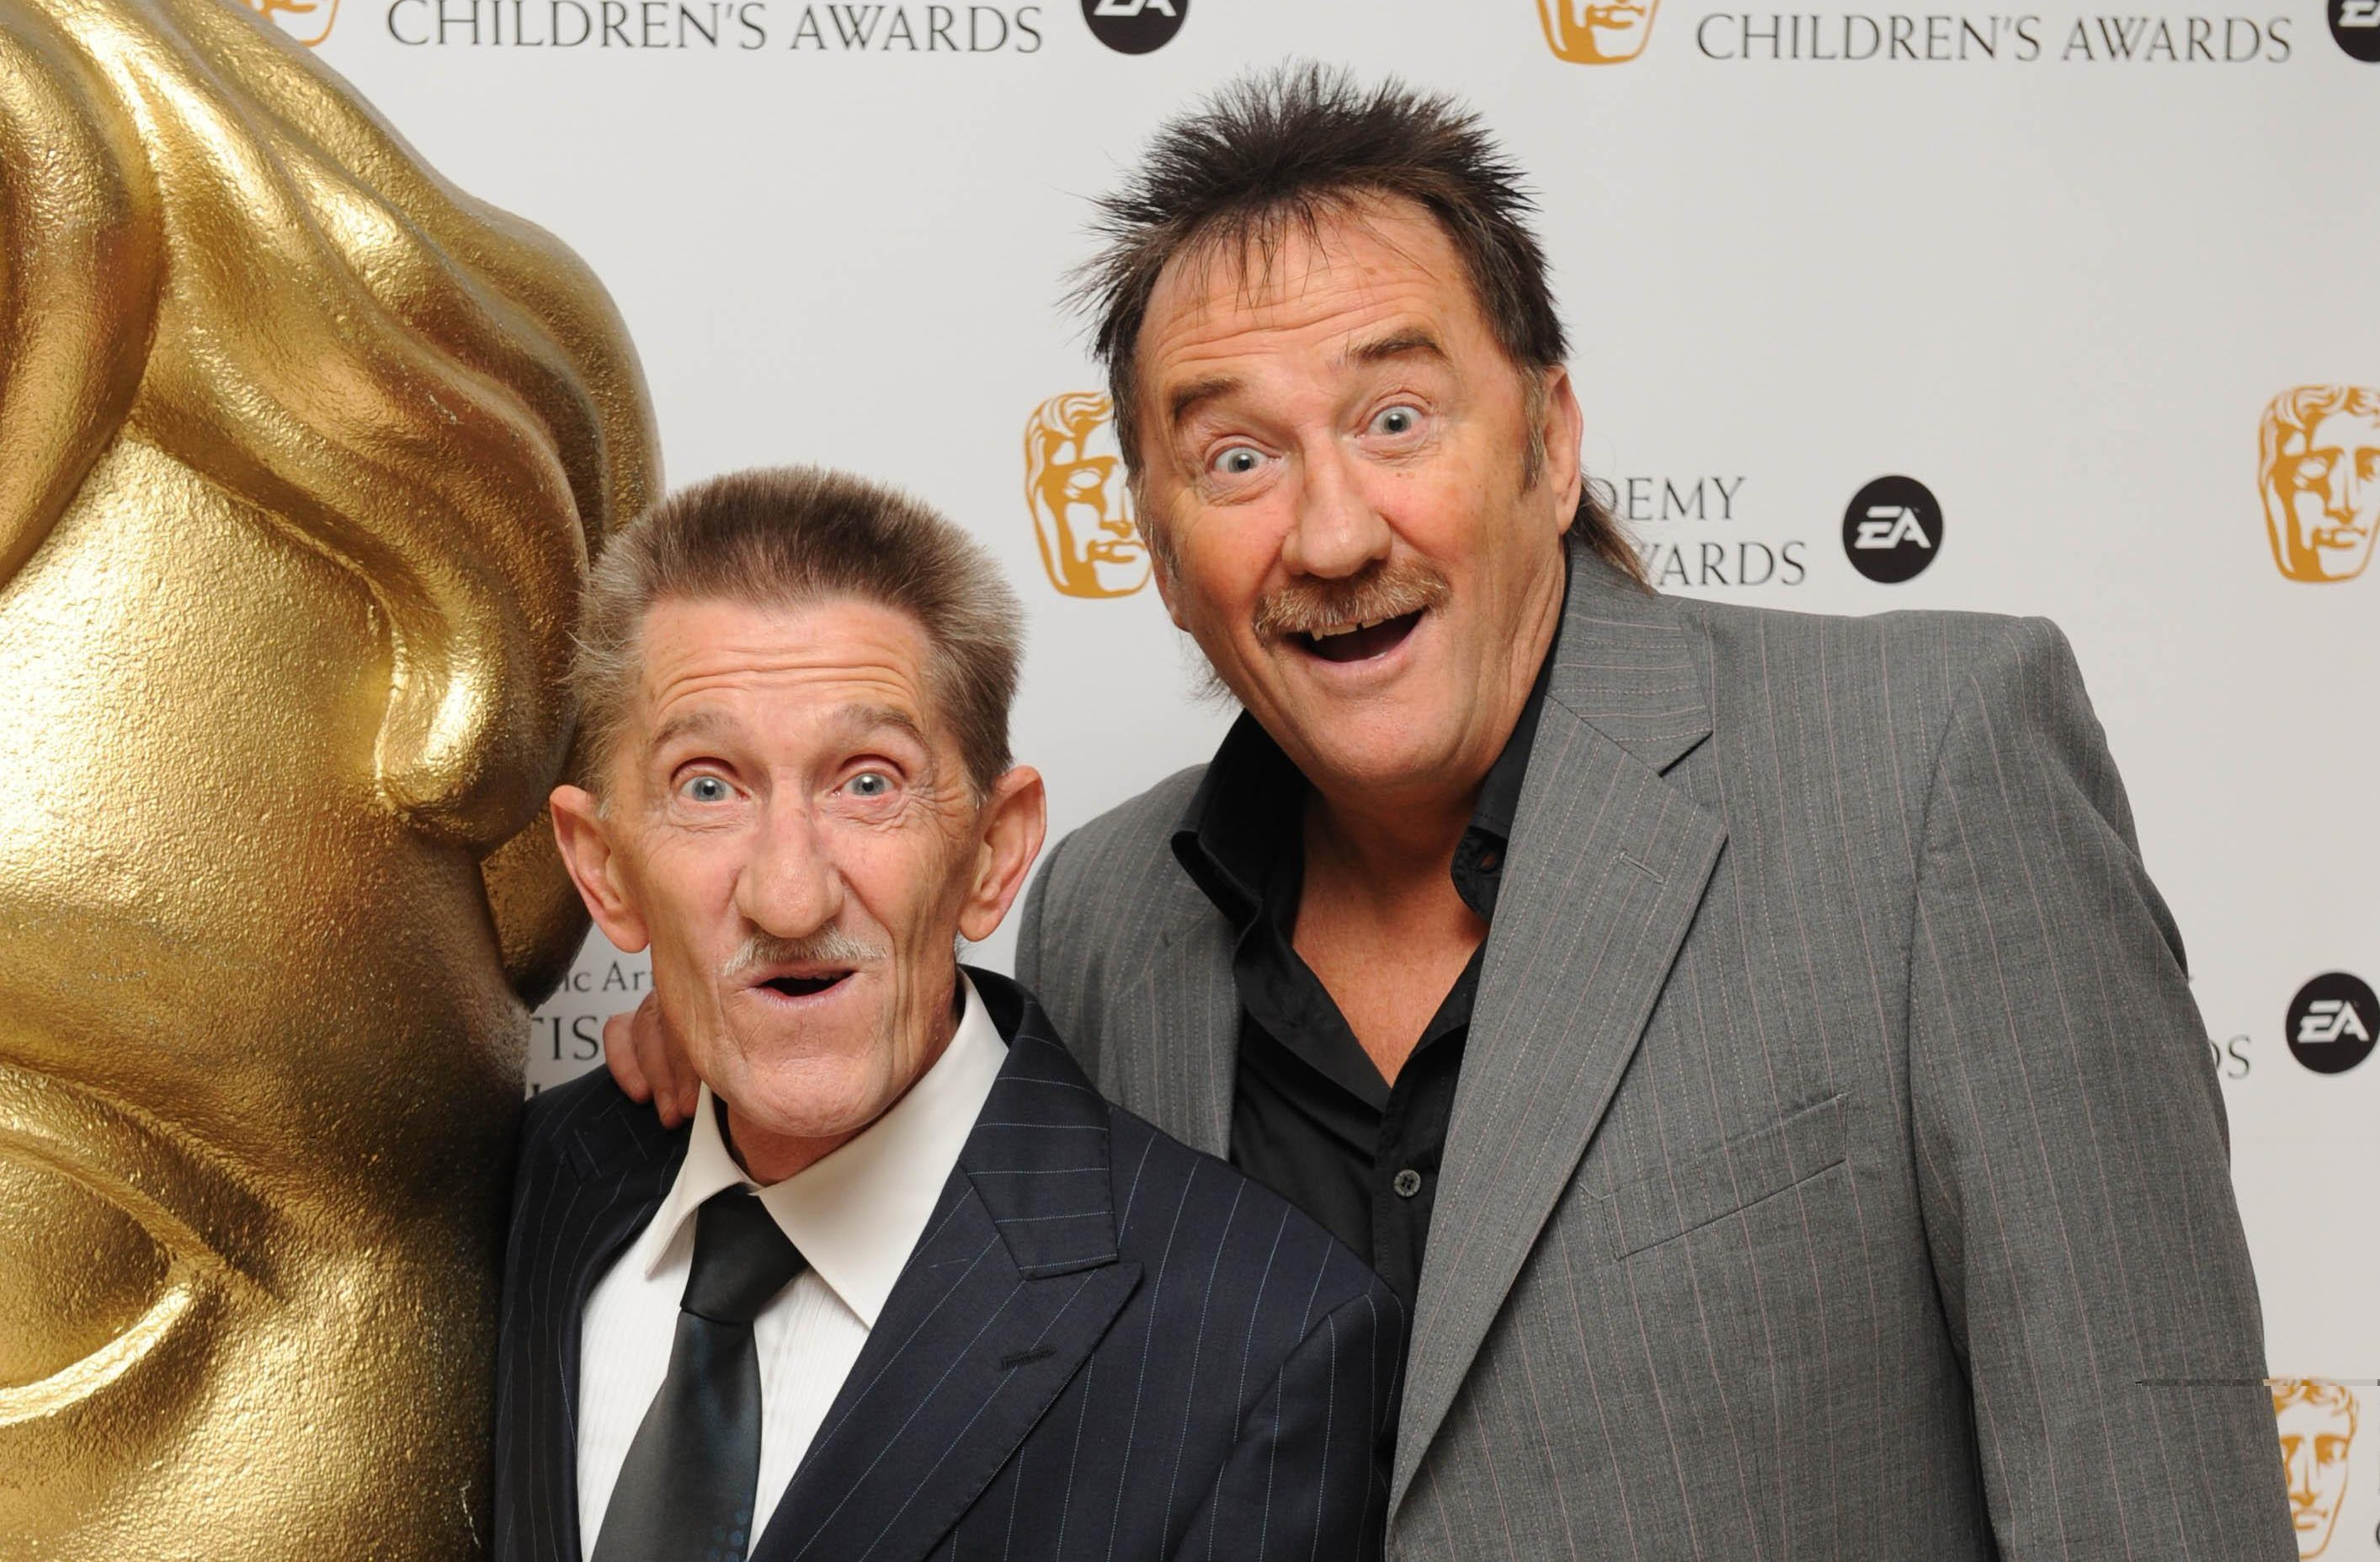 The Chuckle Brothers.